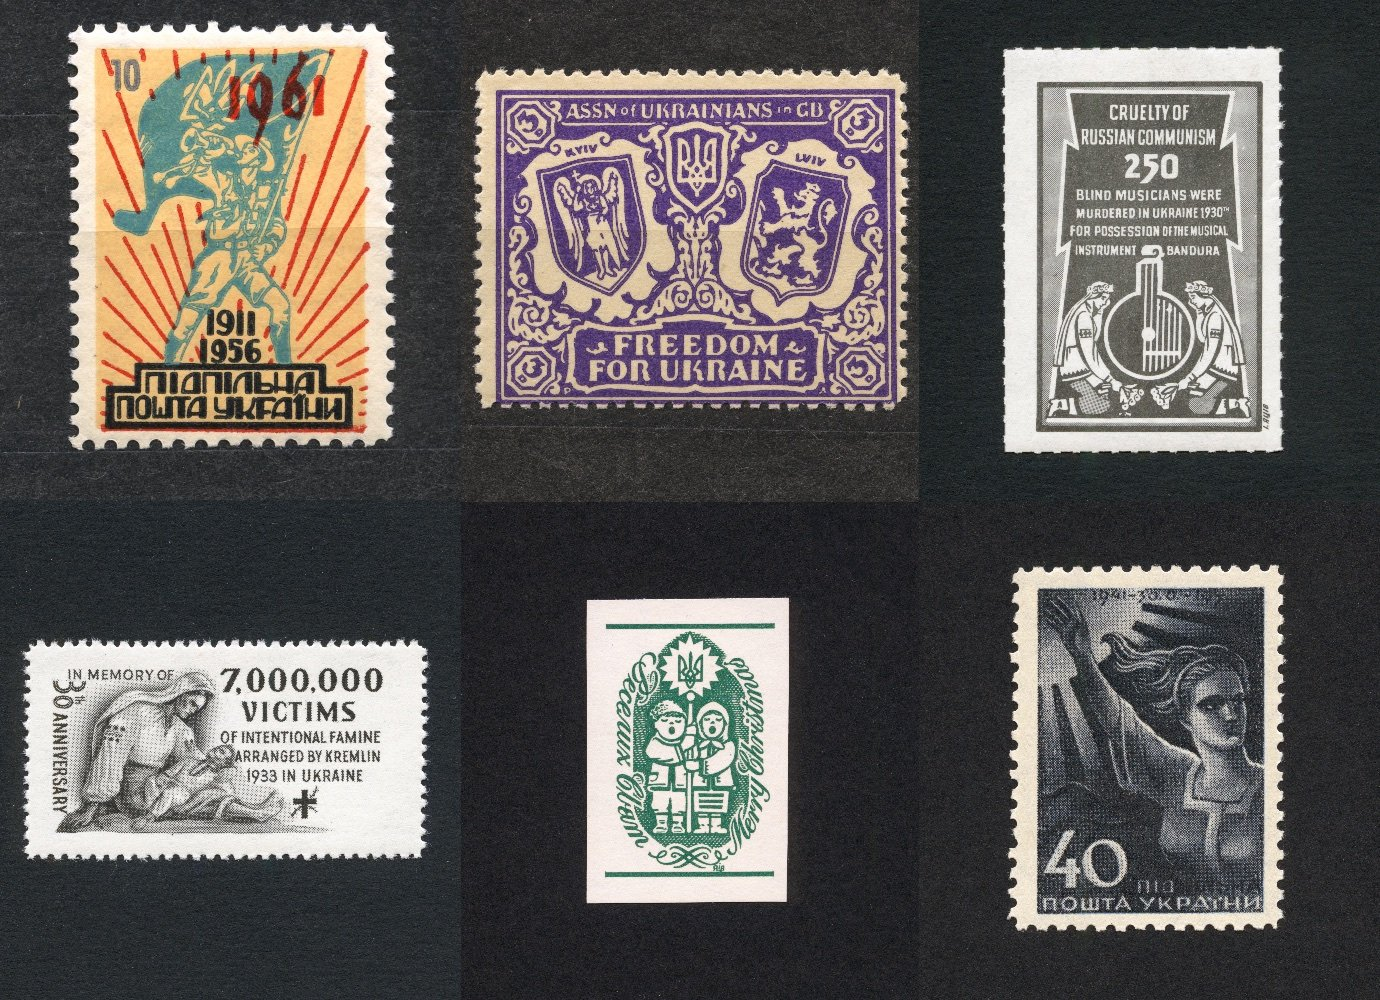 How the Ukrainian diaspora denounced Soviet repression through underground postage stamps